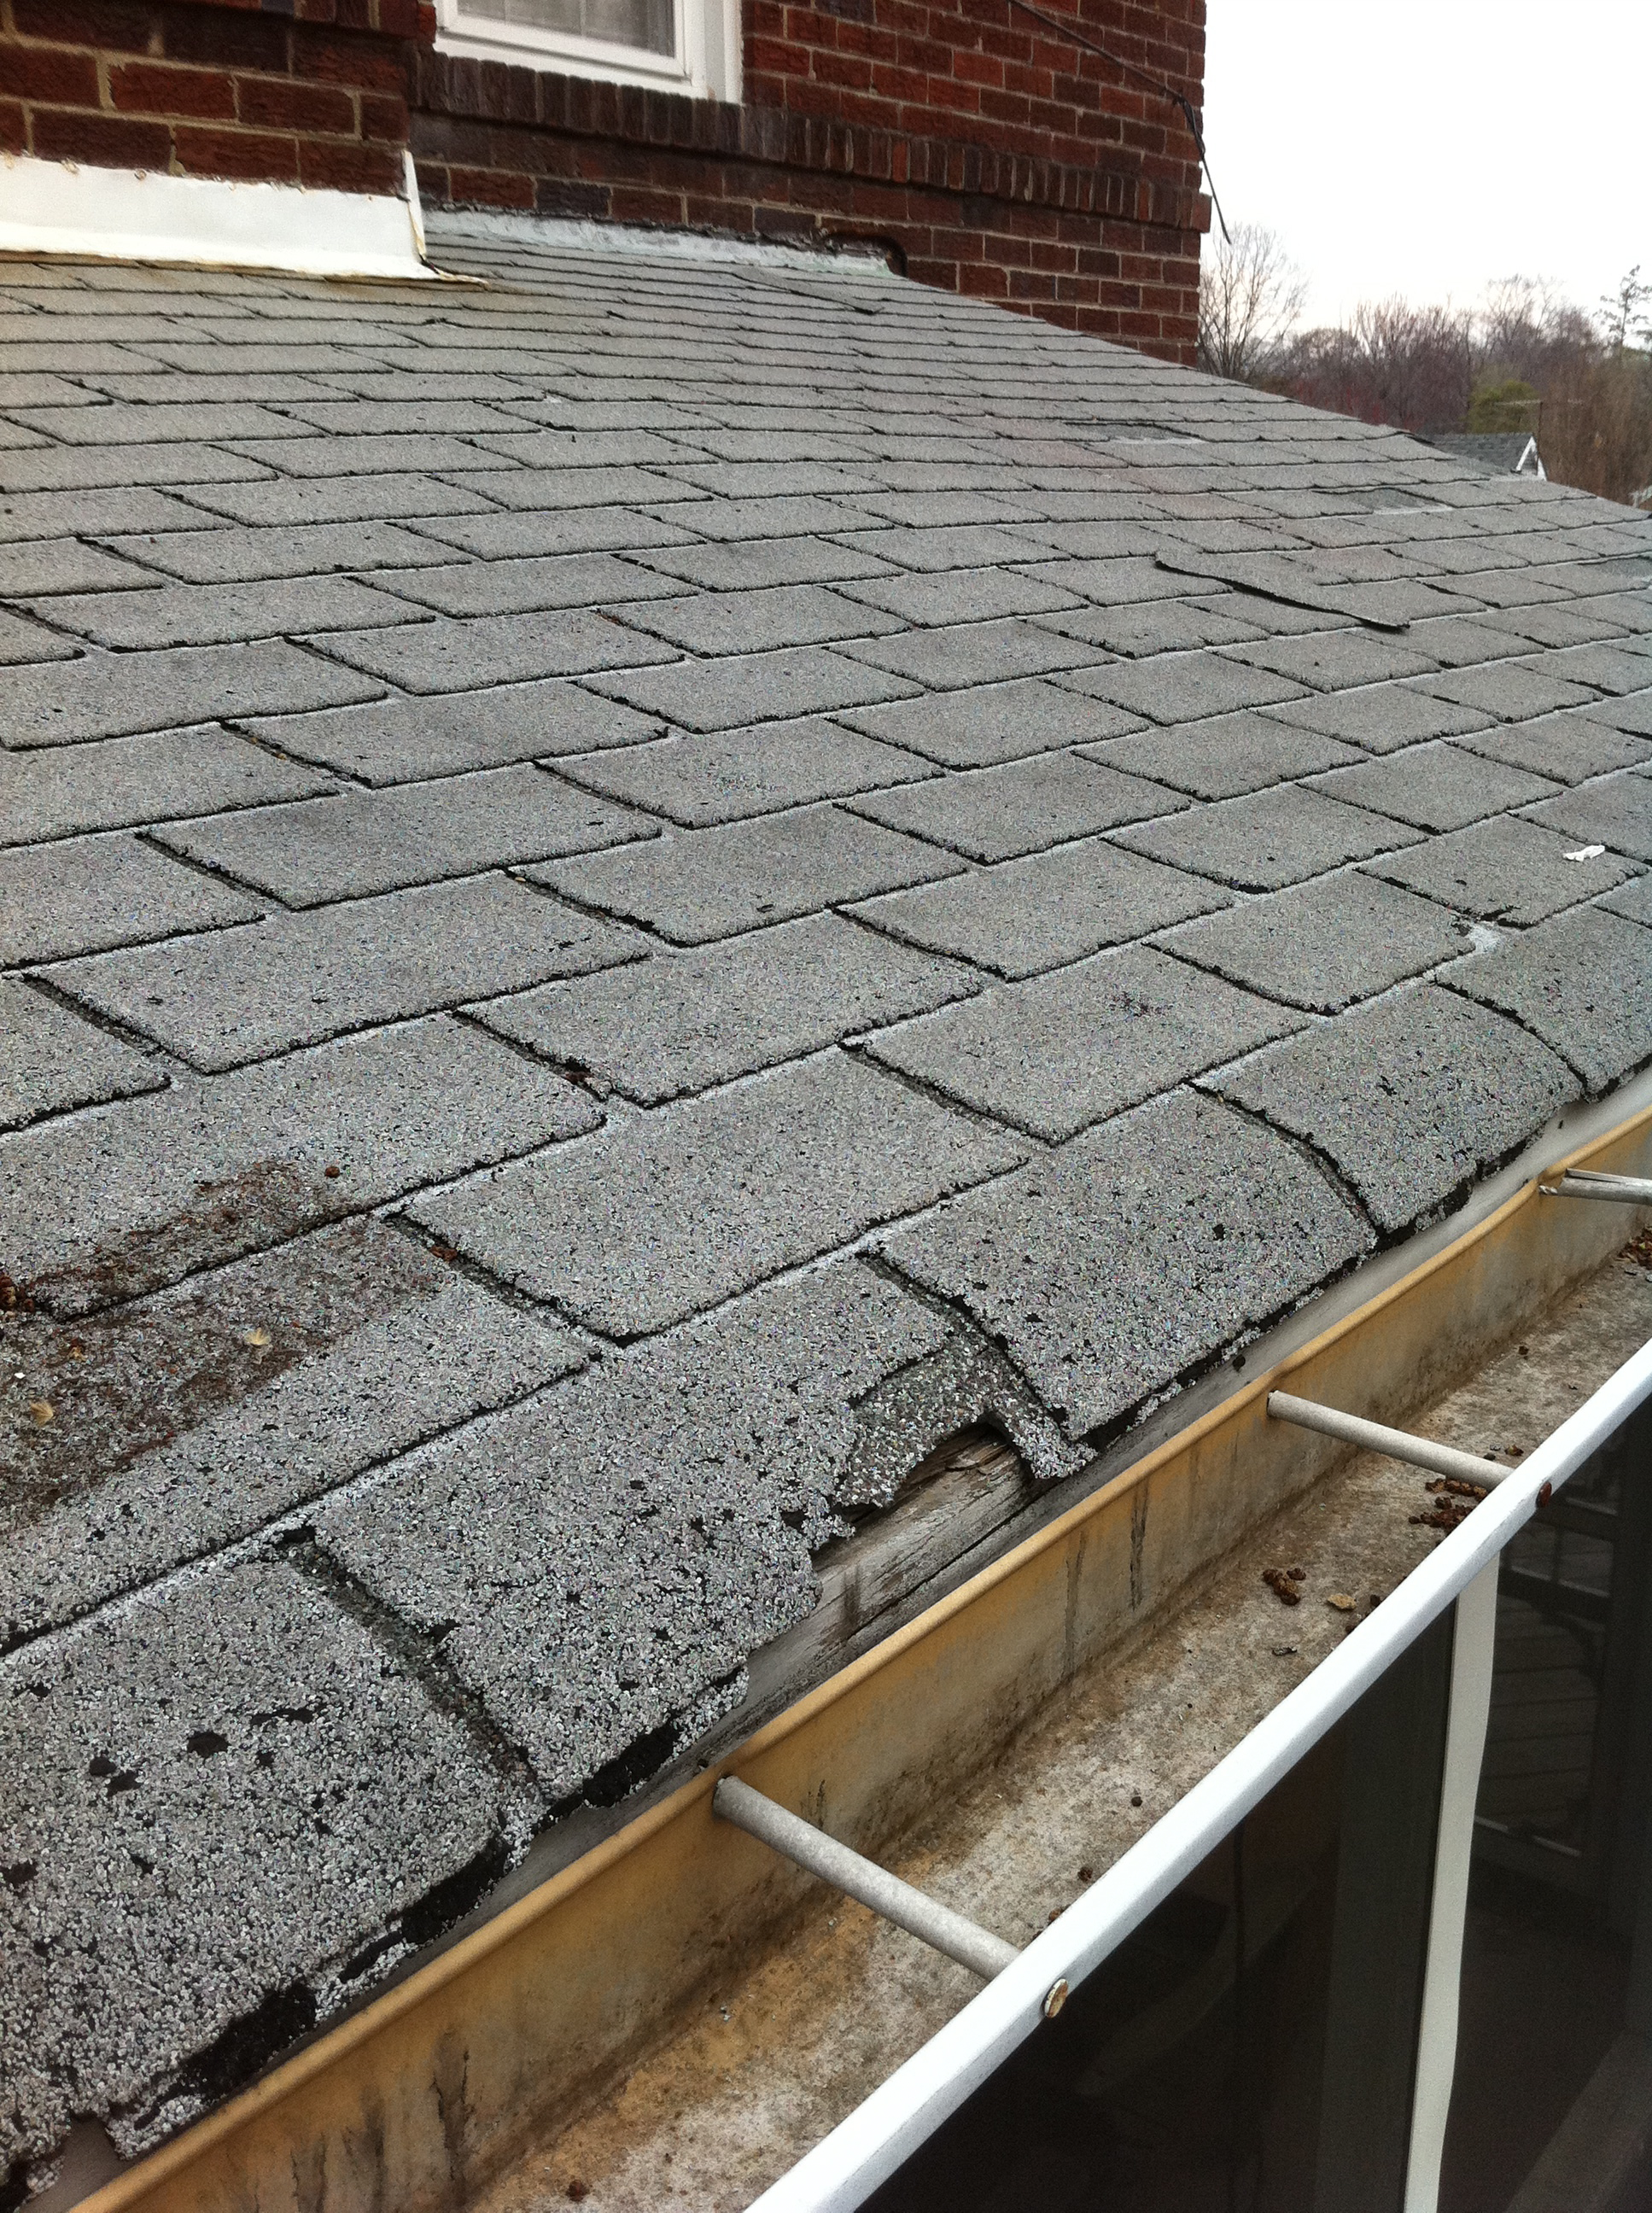 Deteriorated Roof Shingles